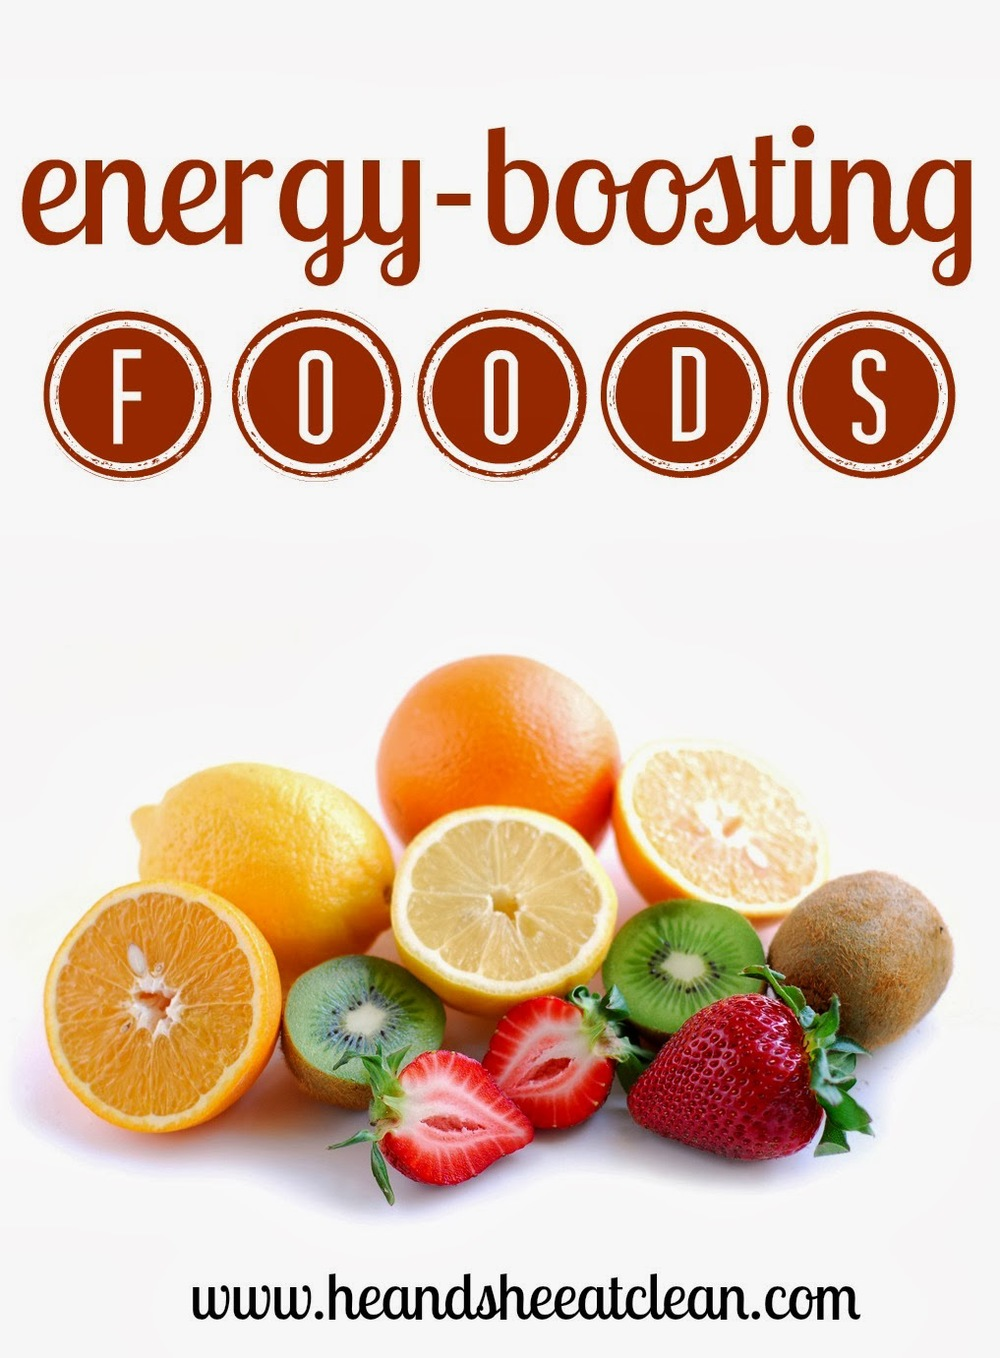 what-to-eat-energy-fight-fatigue-not-boosting-he-she-eat-clean.jpg